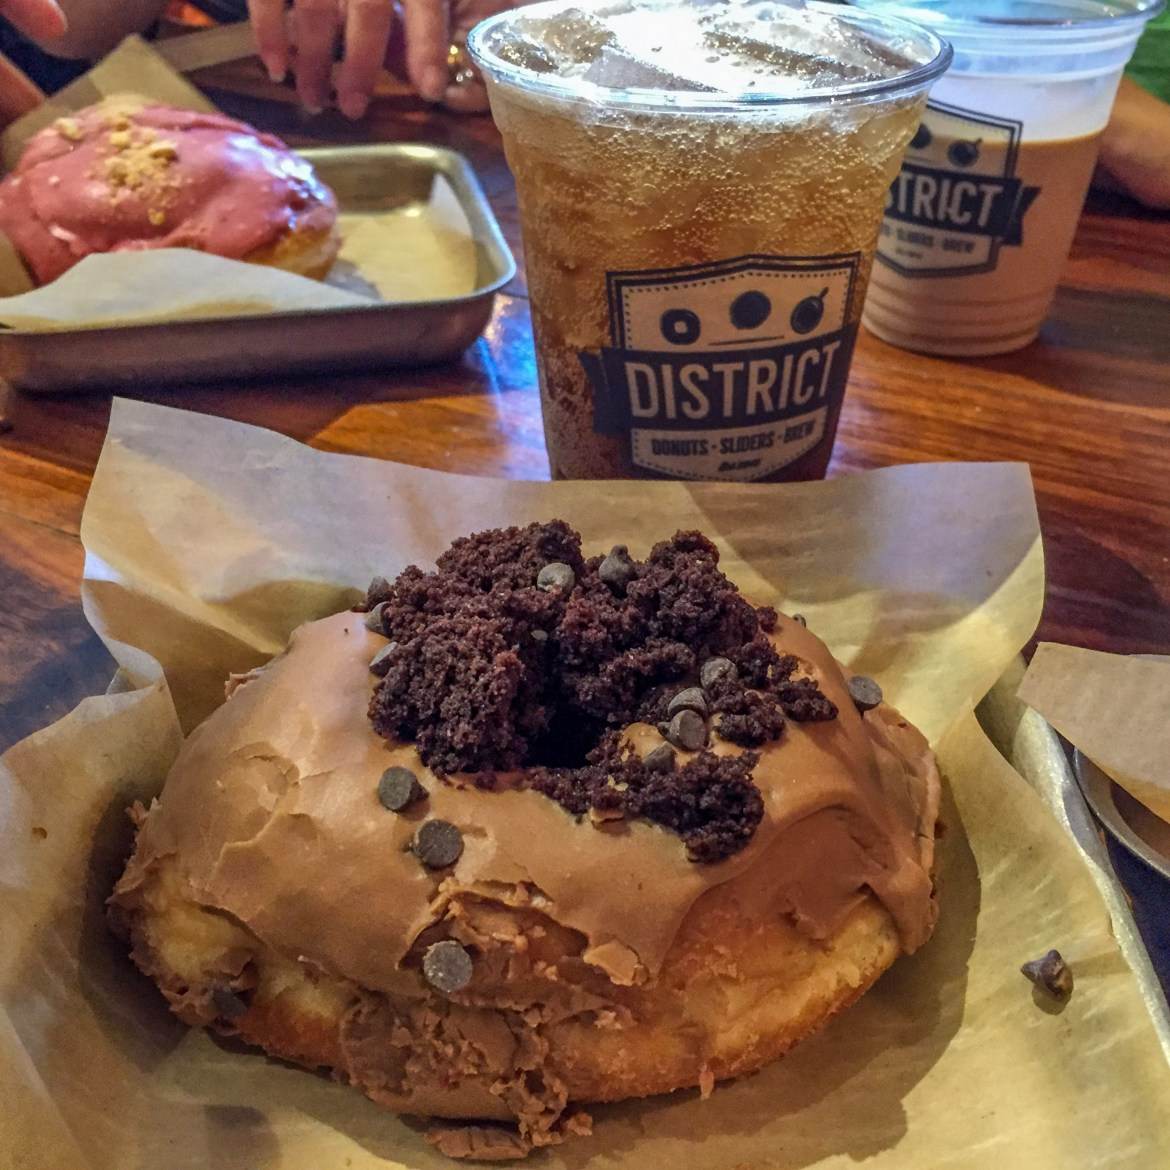 District Donuts New Orleans Louisiana #donuts